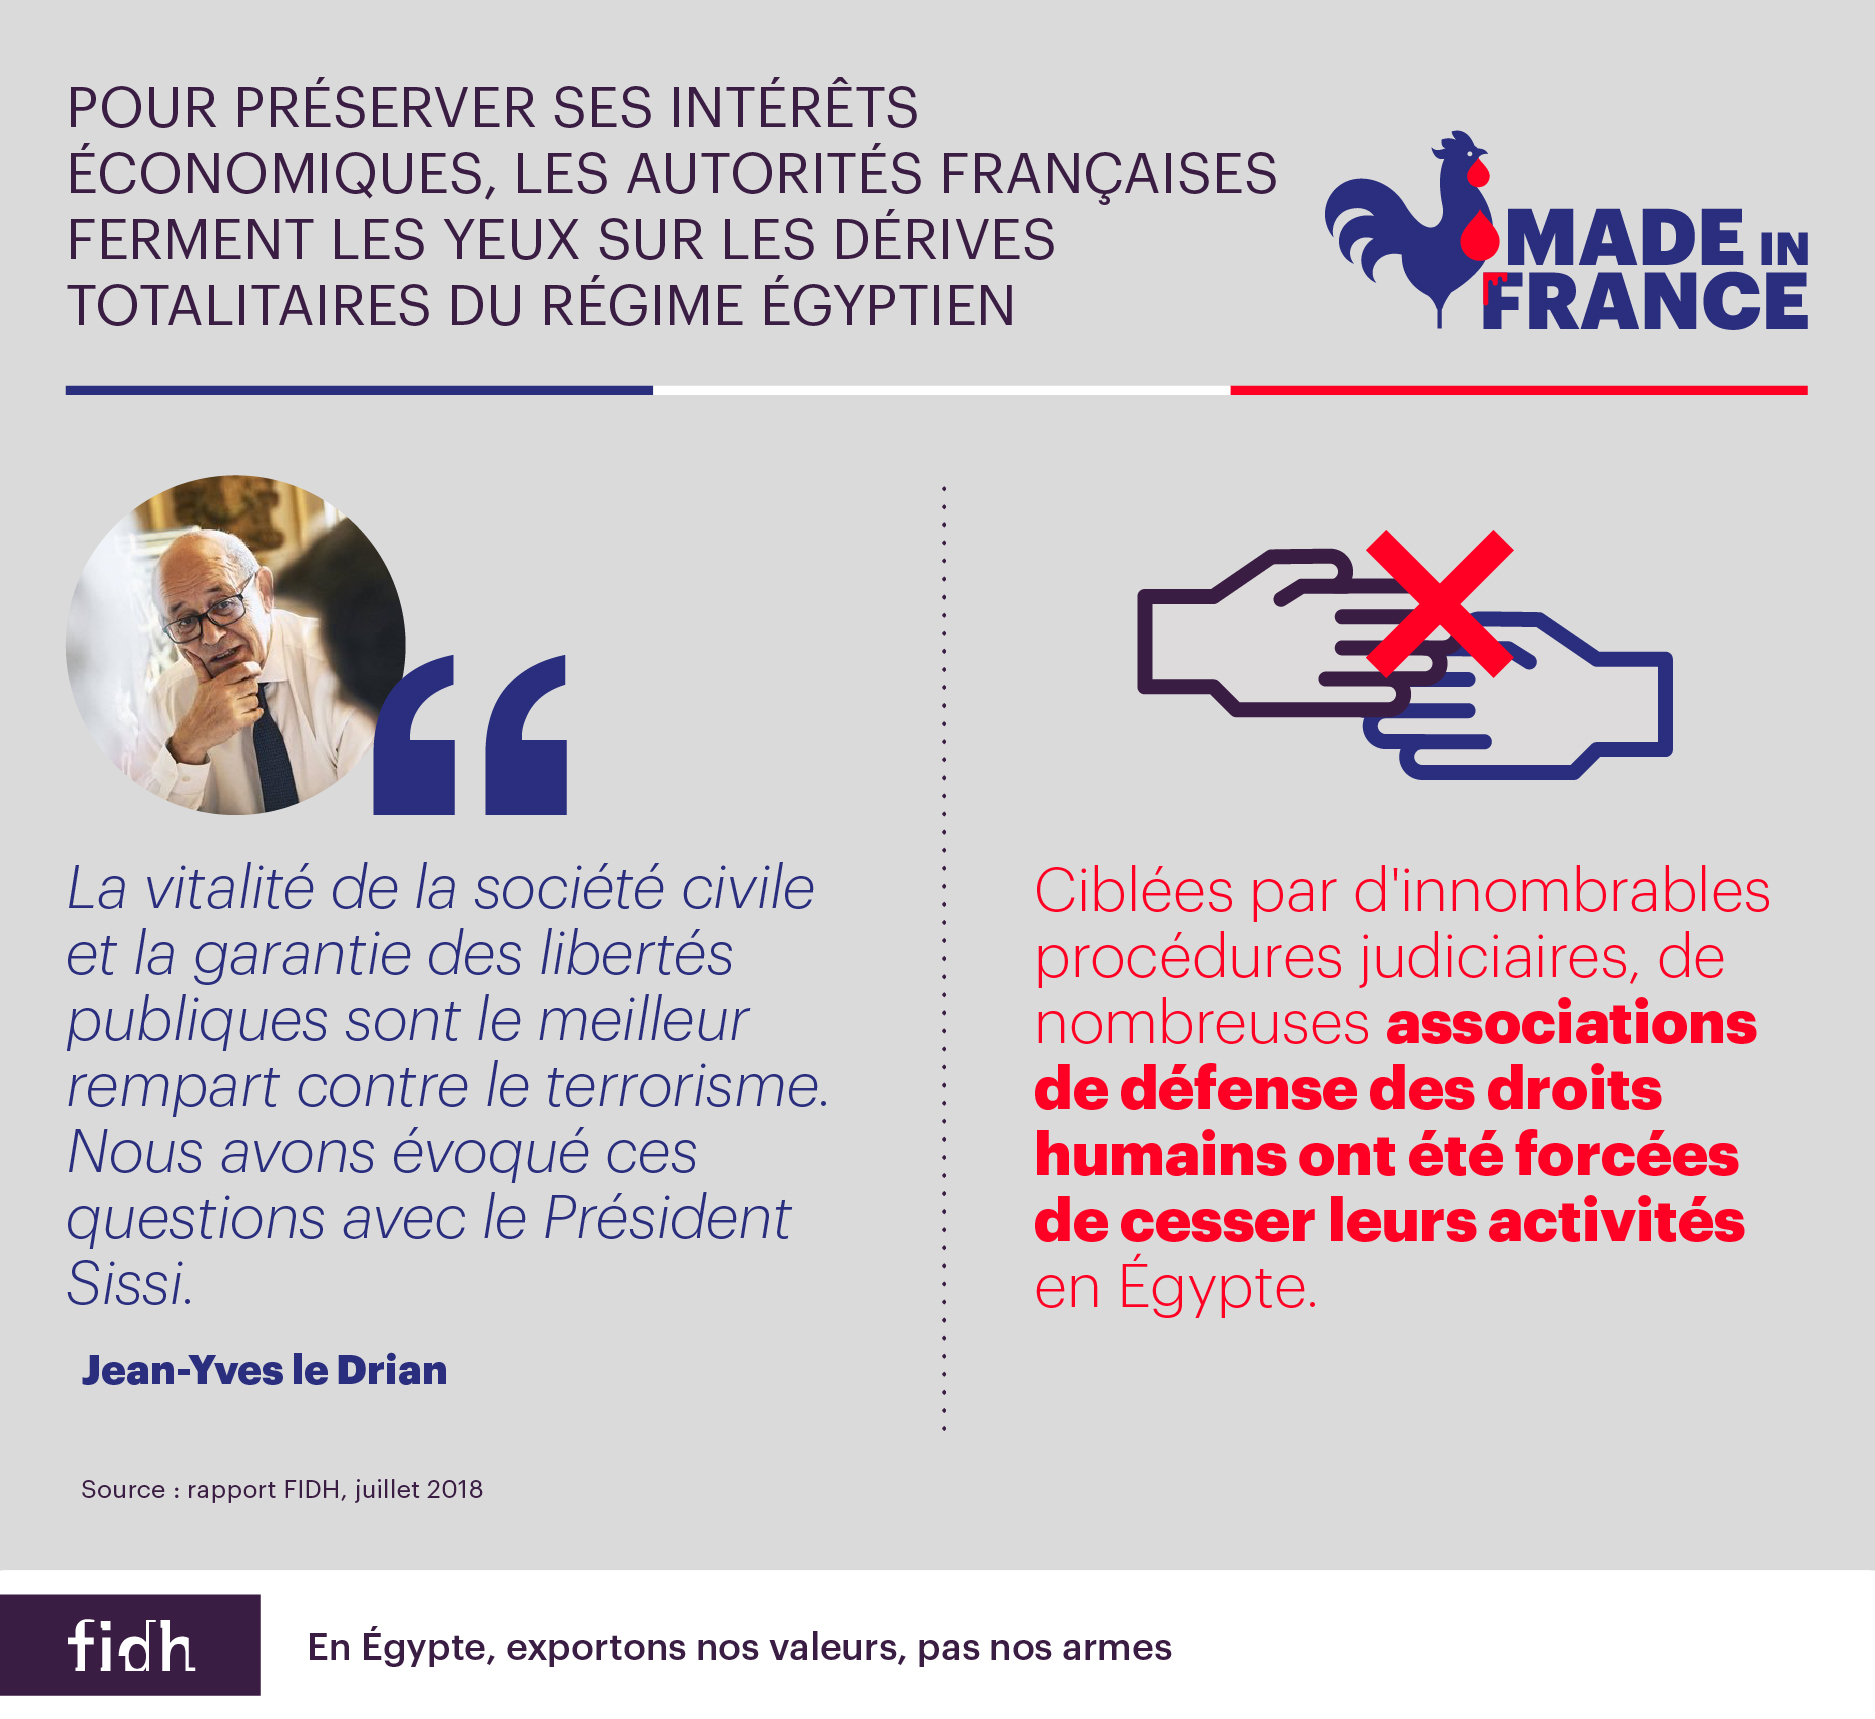 FIDH_MADEINFRANCE_08